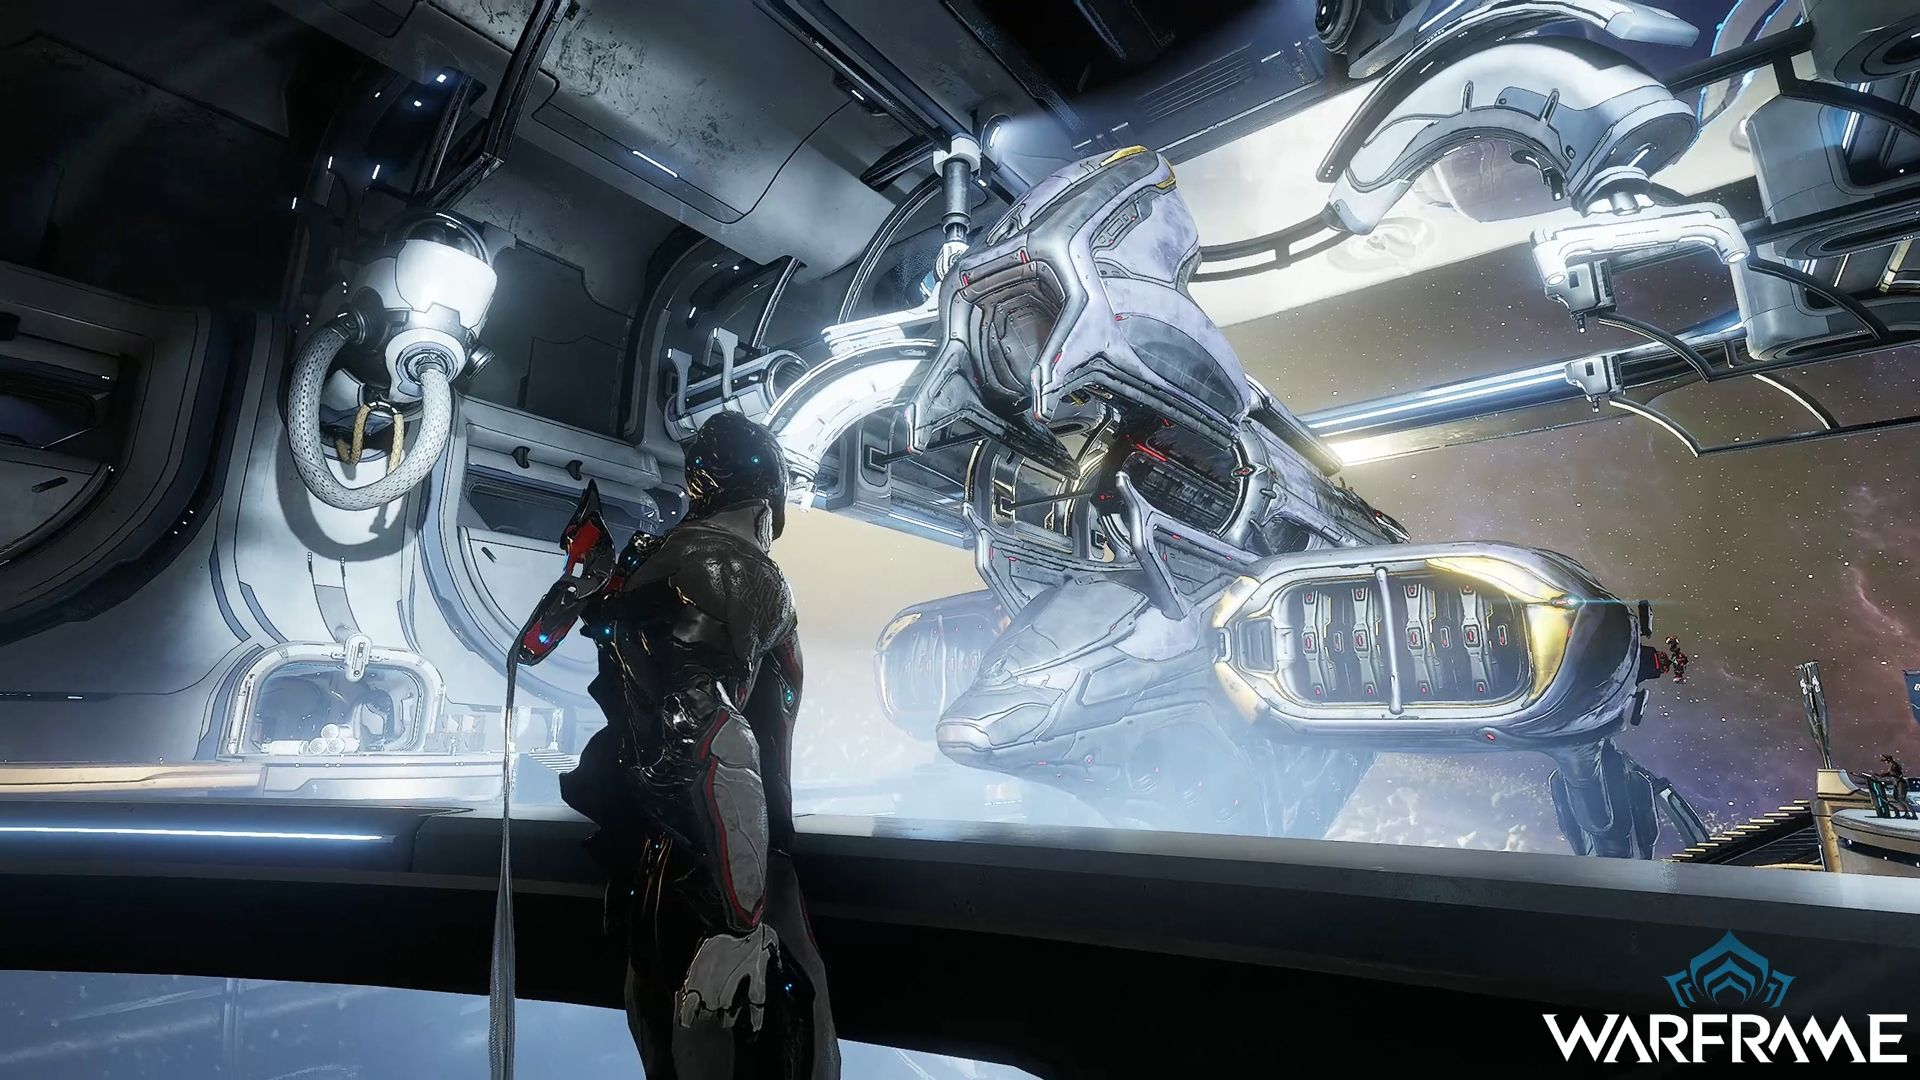 warframe giveaway 2019 tennocon 2019 shows off new content coming to warframe 4701